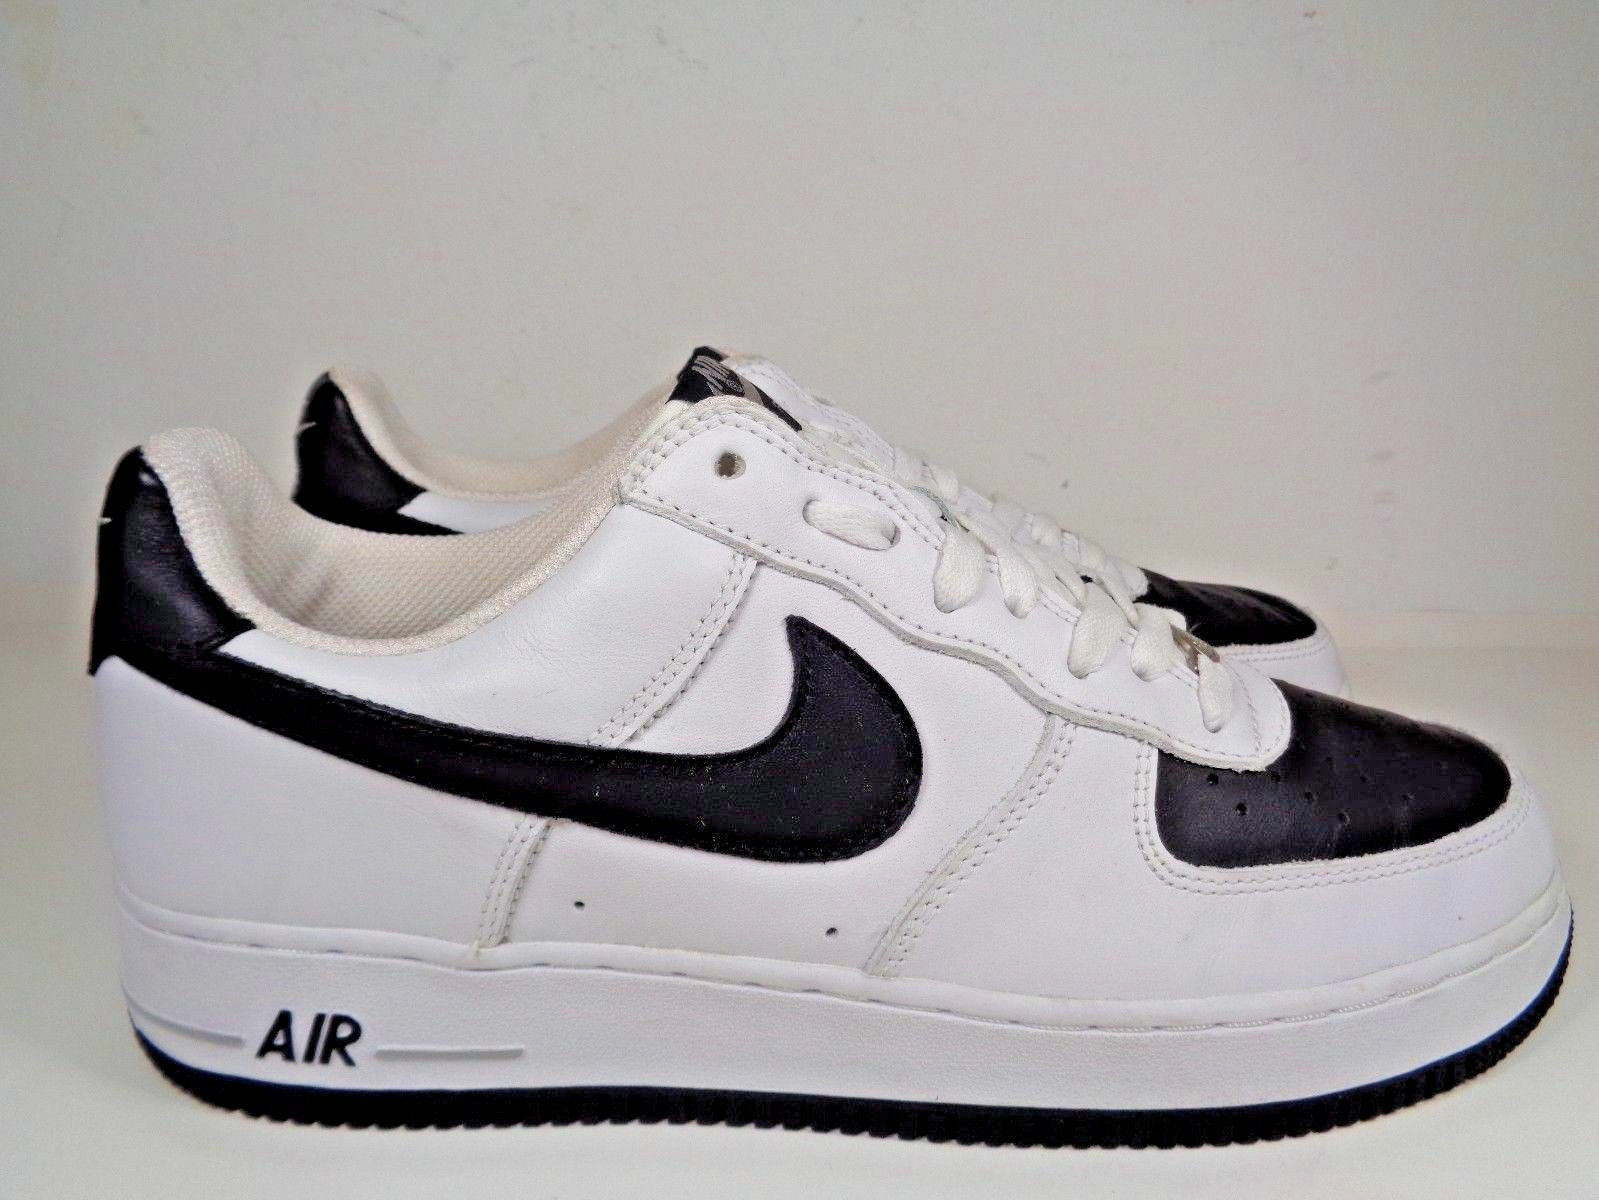 Mens Nike Air Force 1 1 1 White Black Neutral Basketball shoes size 11 US 306353-103 643be0